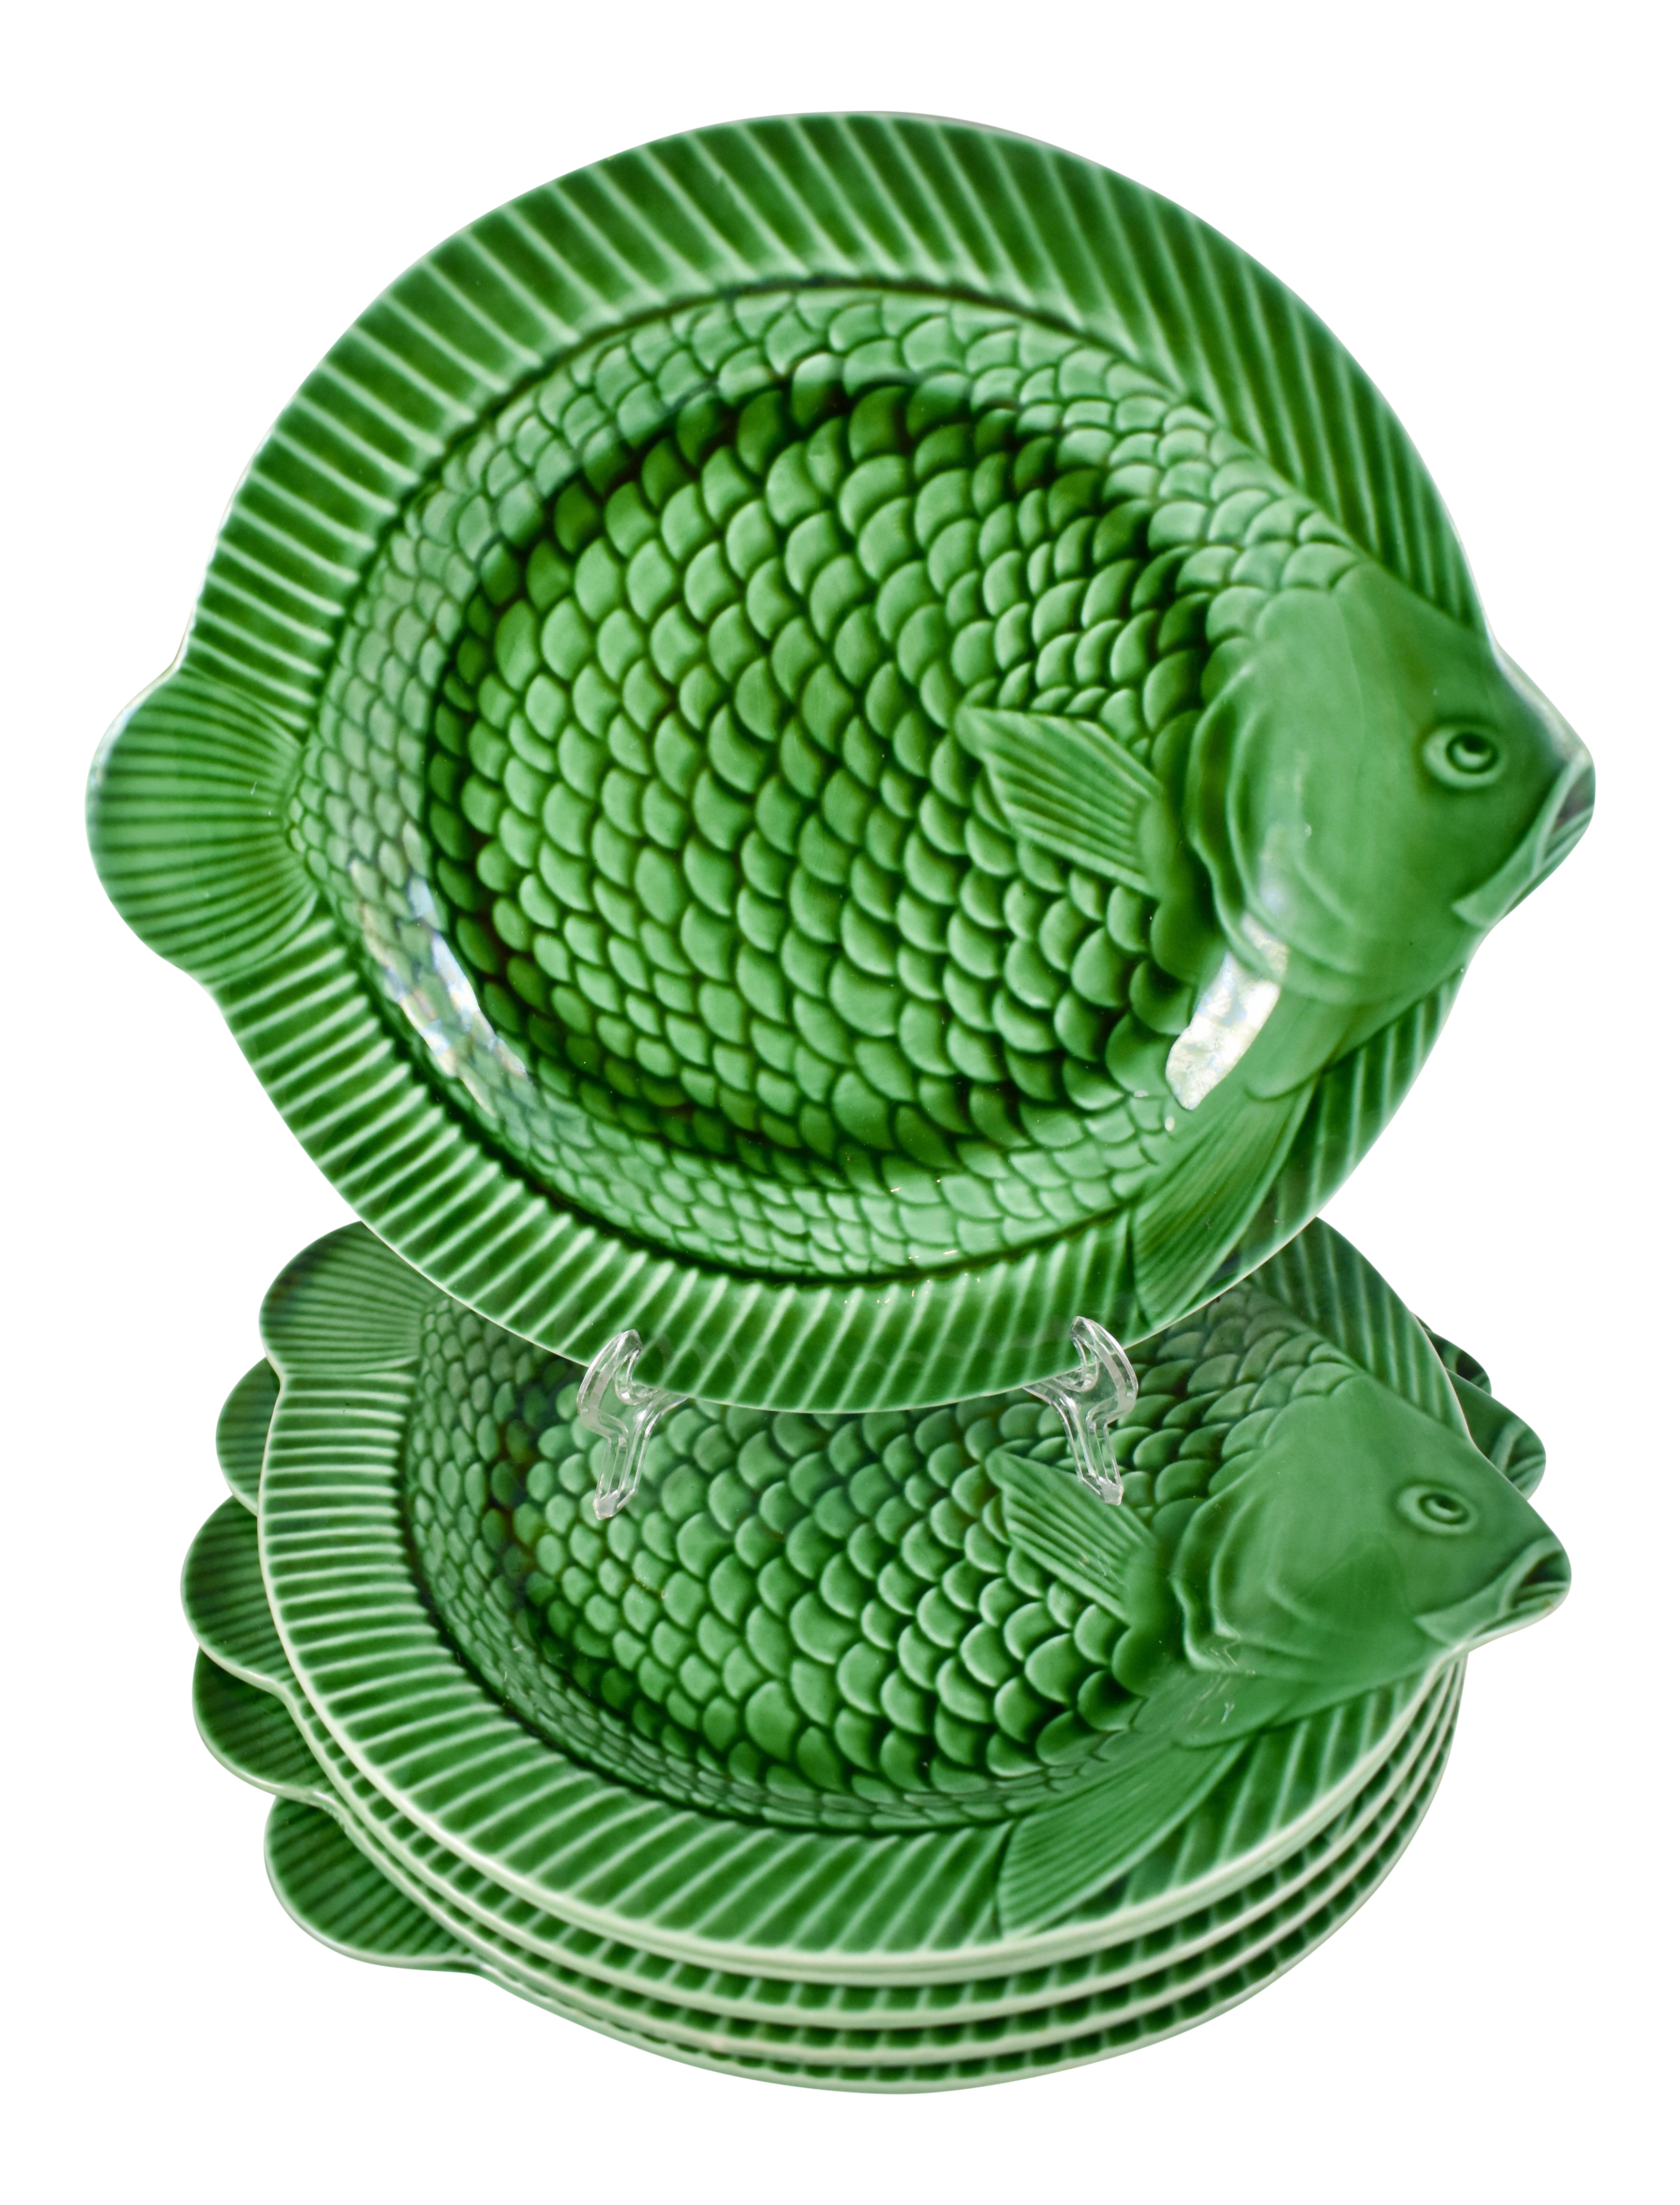 Sarreguemines French Majolica Green Fish Service Plates - Set of 6  sc 1 st  Chairish & Sarreguemines French Majolica Green Fish Service Plates - Set of 6 ...